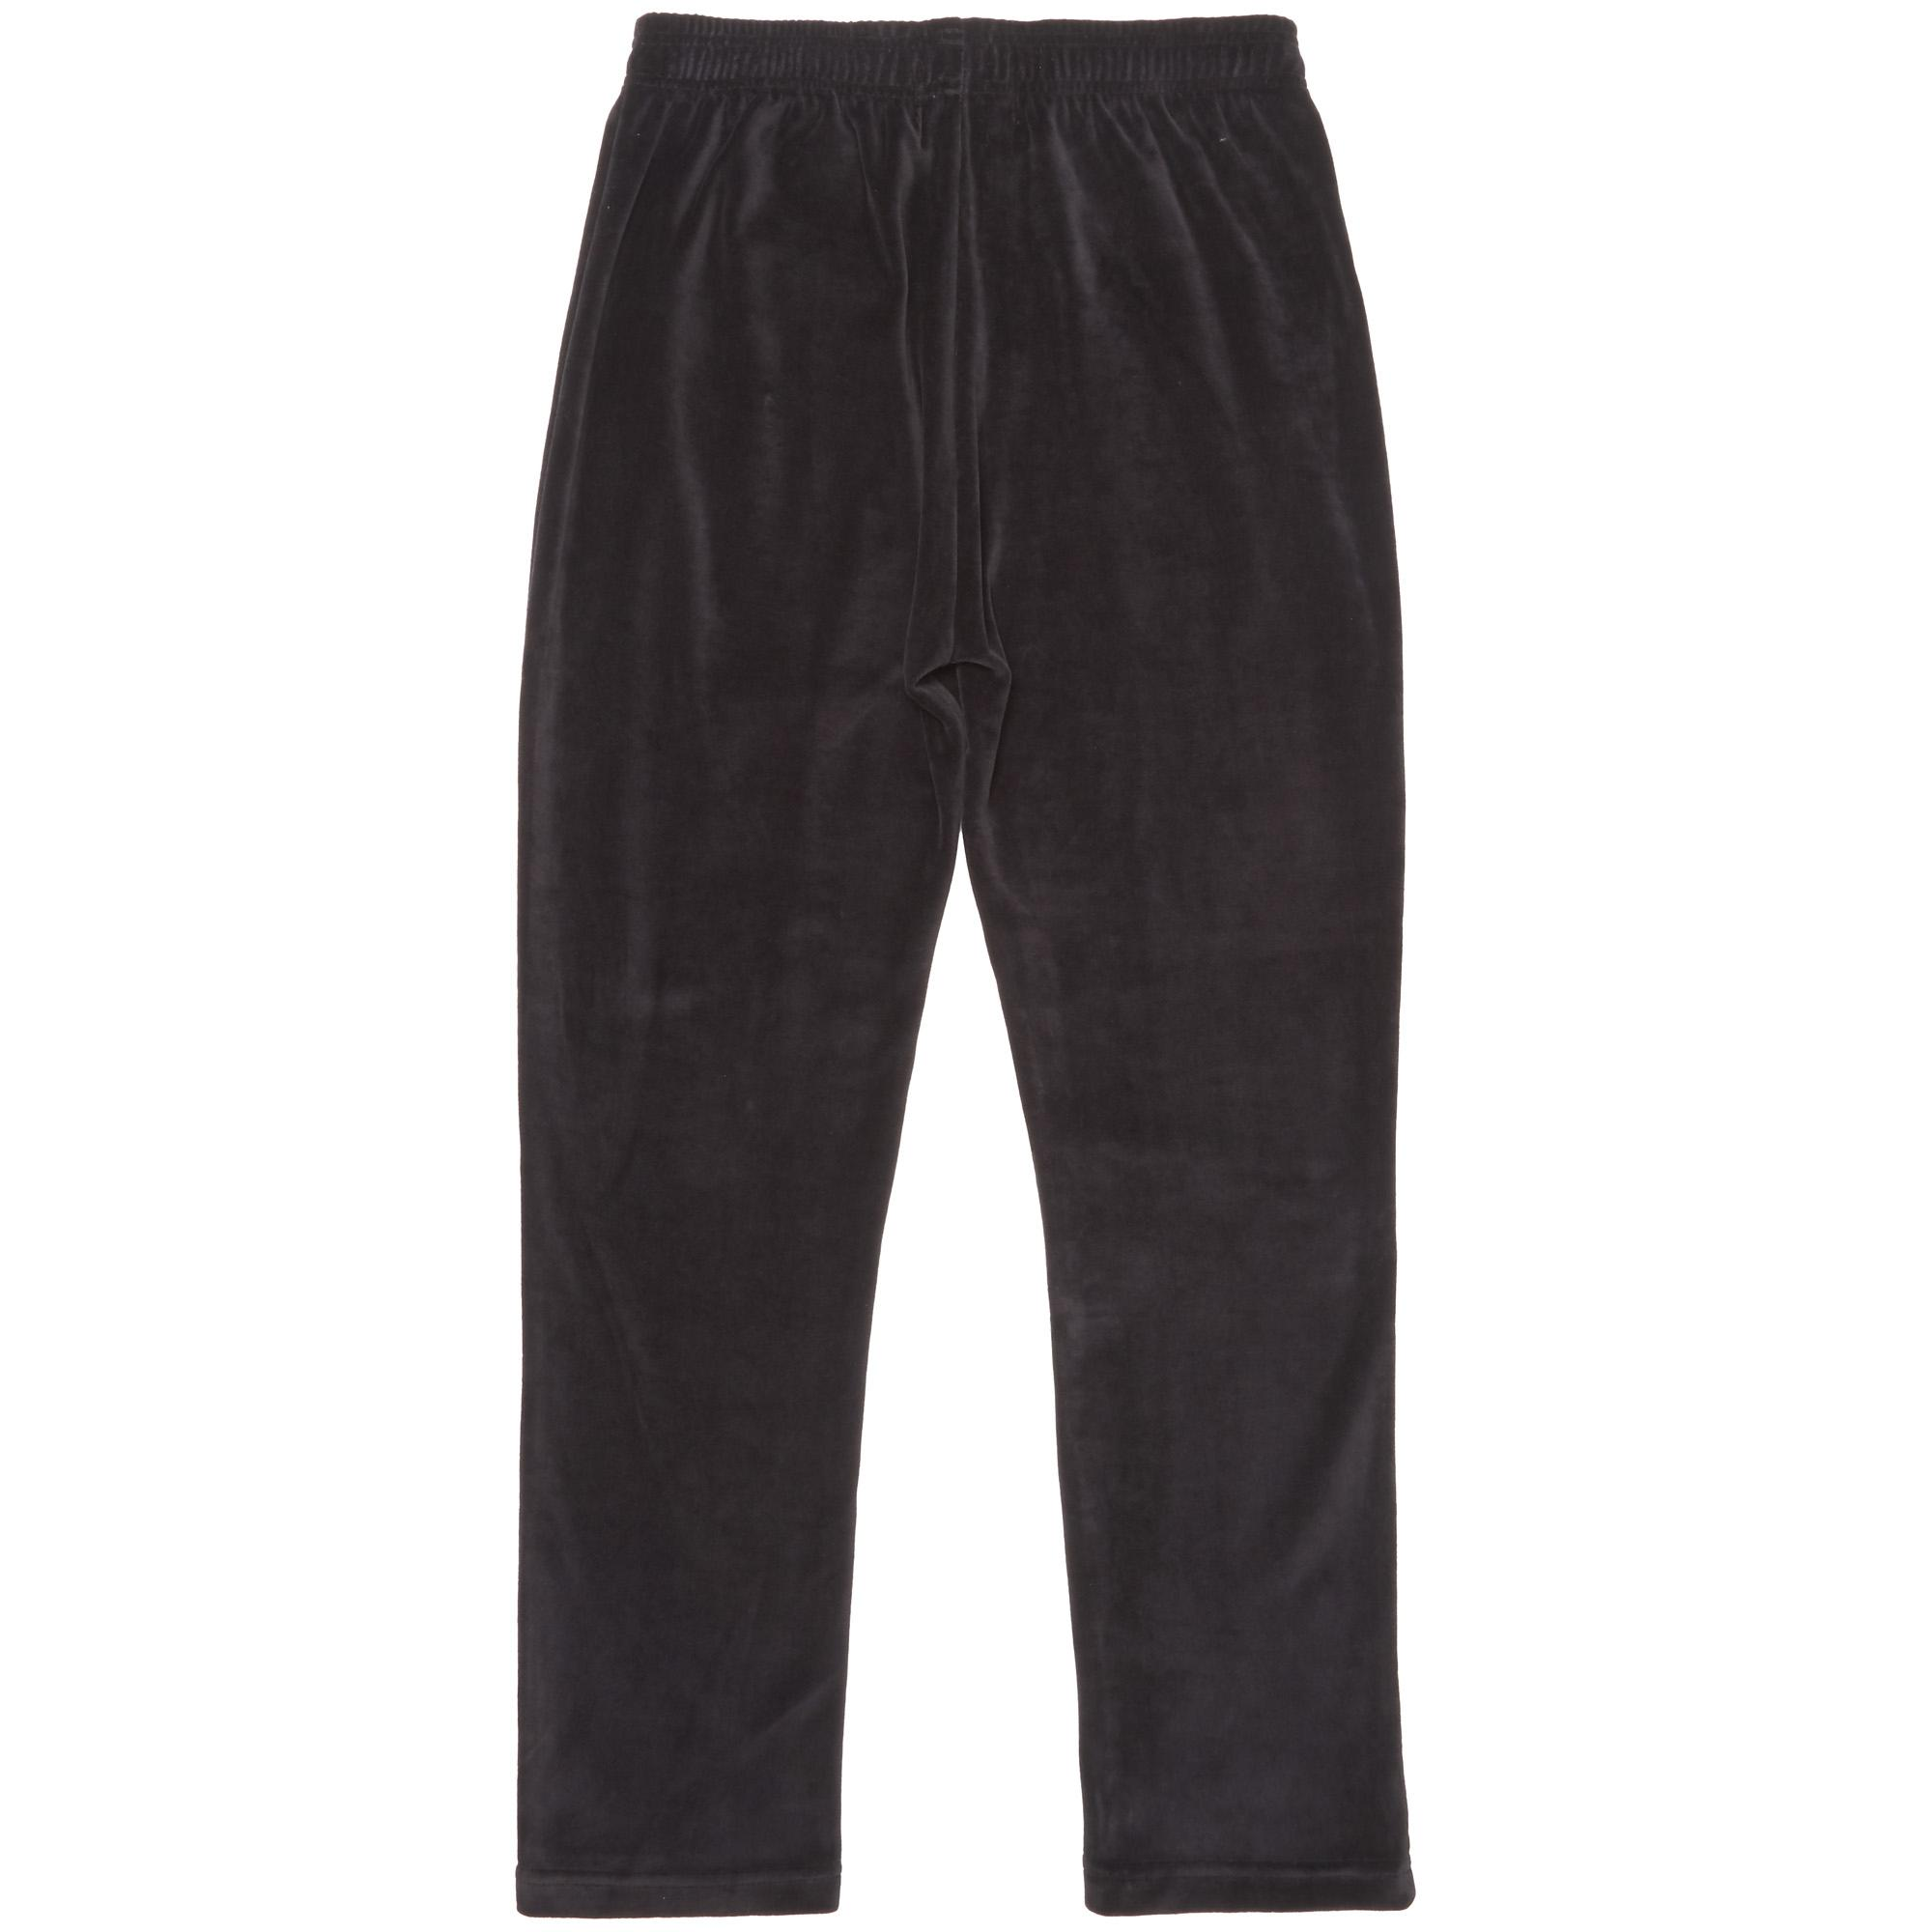 Fred Perry Cotton Velour Track Pants in Black